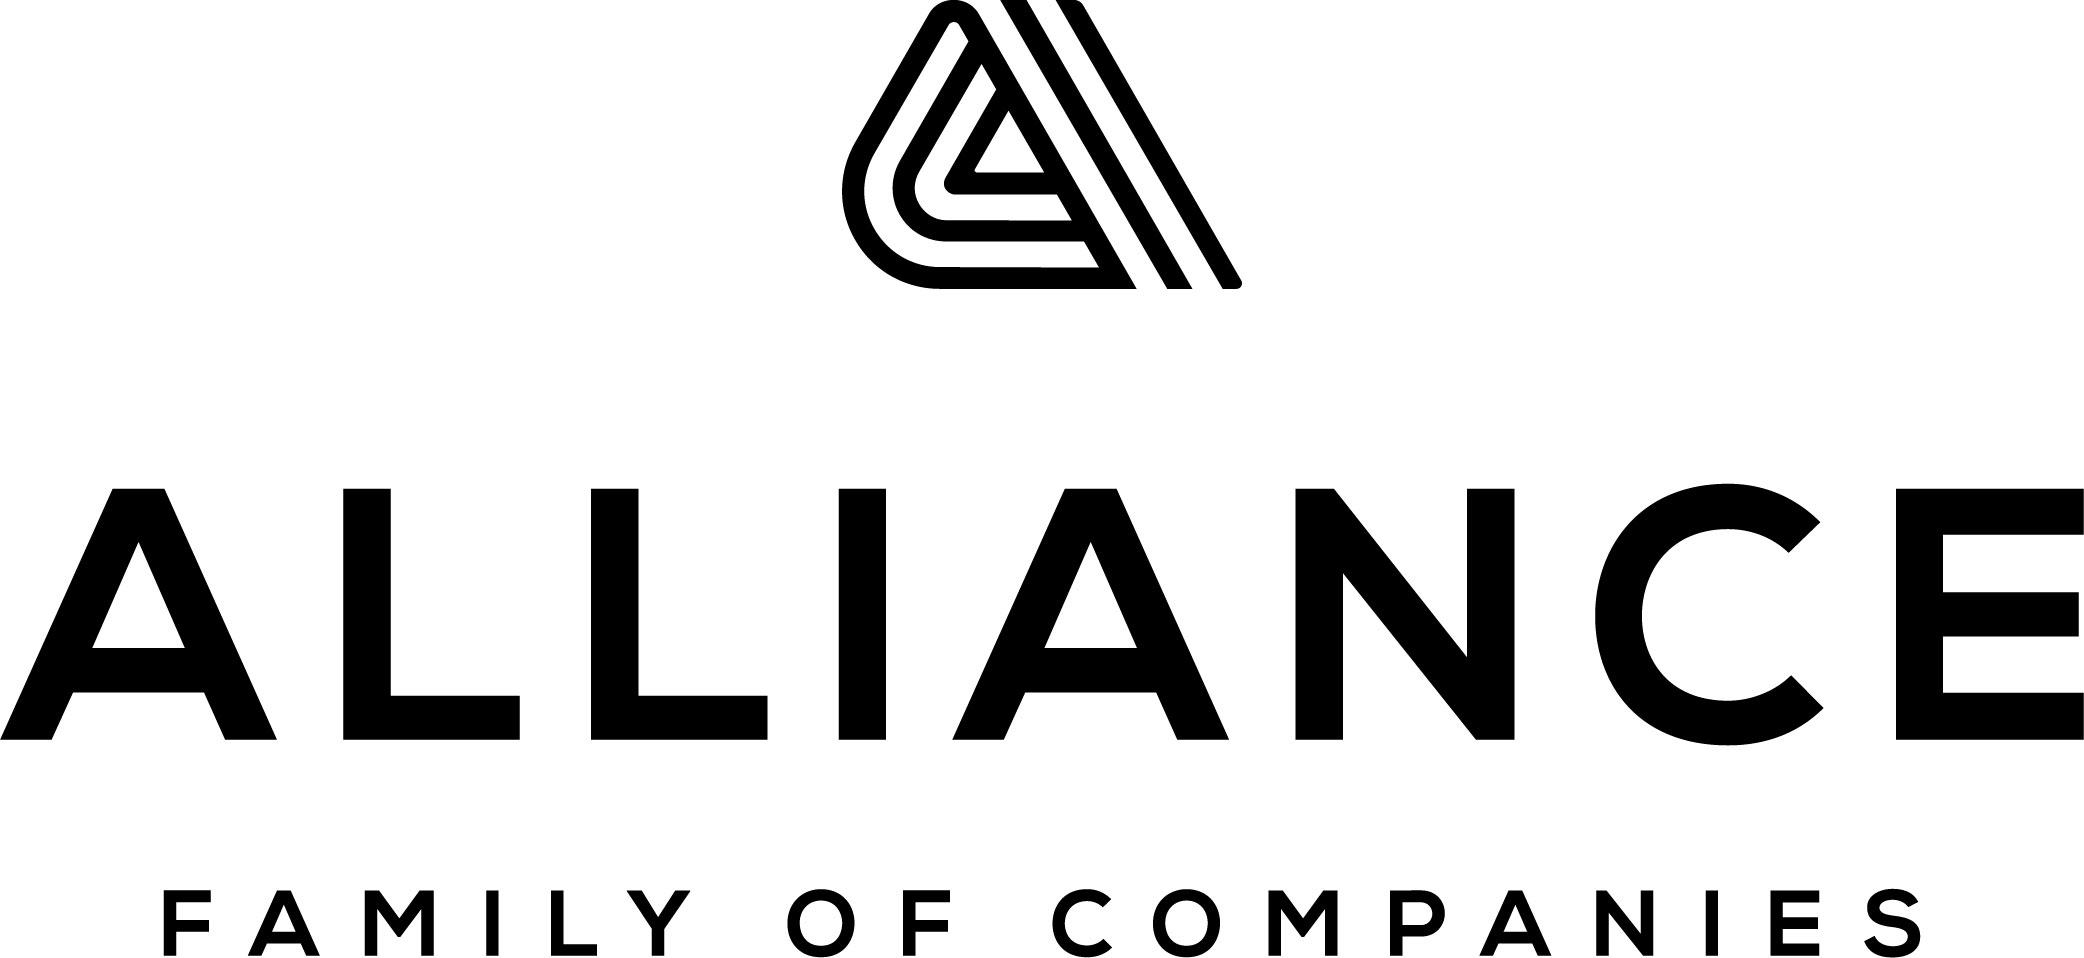 Allianz brand logo 01 iron on sticker